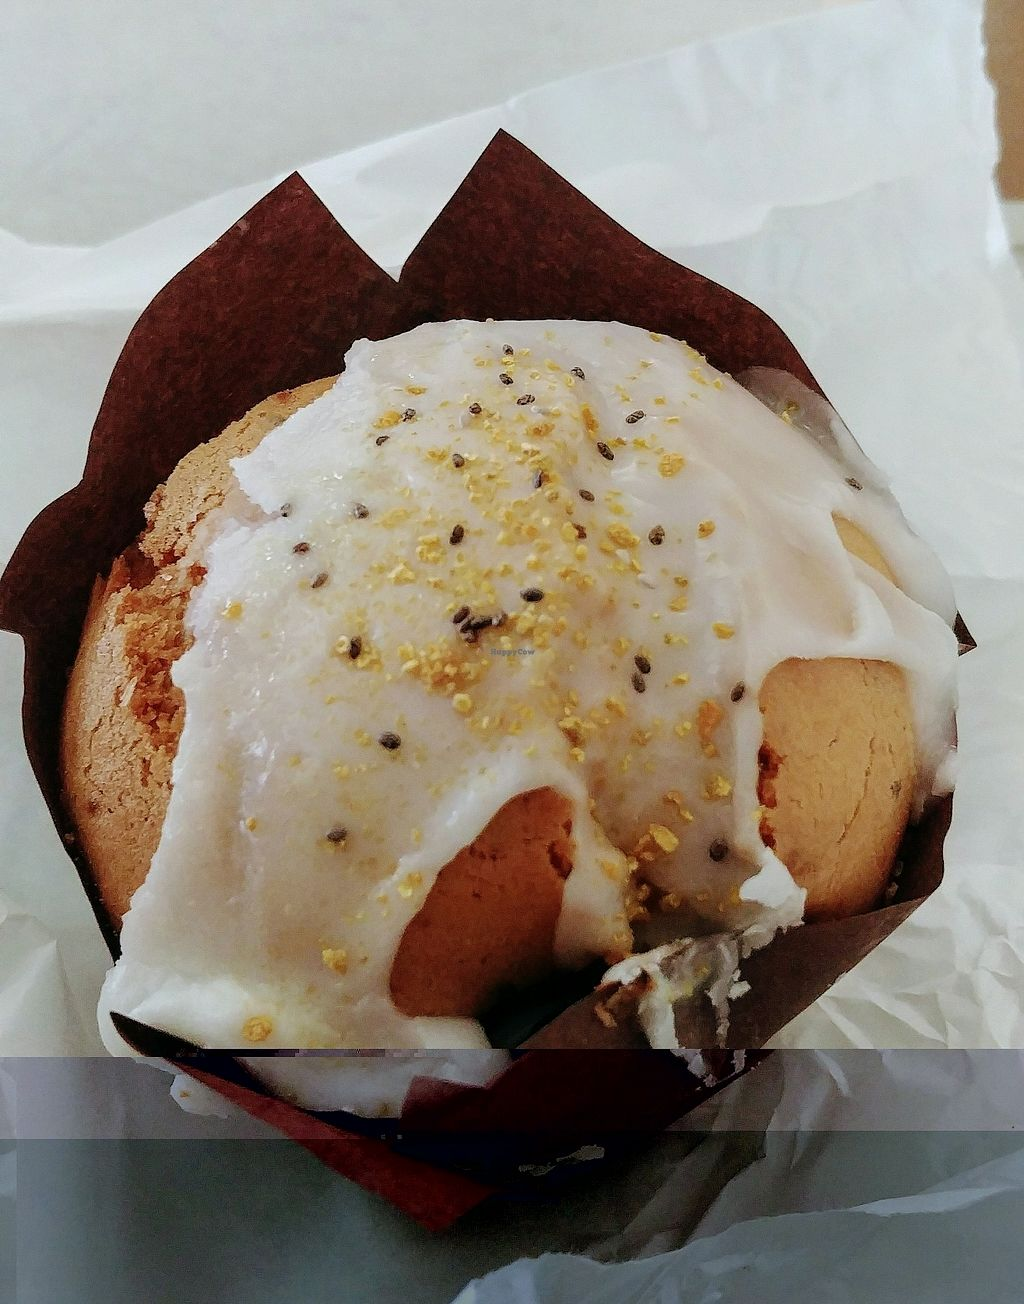 """Photo of Salte  by <a href=""""/members/profile/karlaess"""">karlaess</a> <br/>orange and chia seed muffin <br/> March 3, 2018  - <a href='/contact/abuse/image/87657/366341'>Report</a>"""